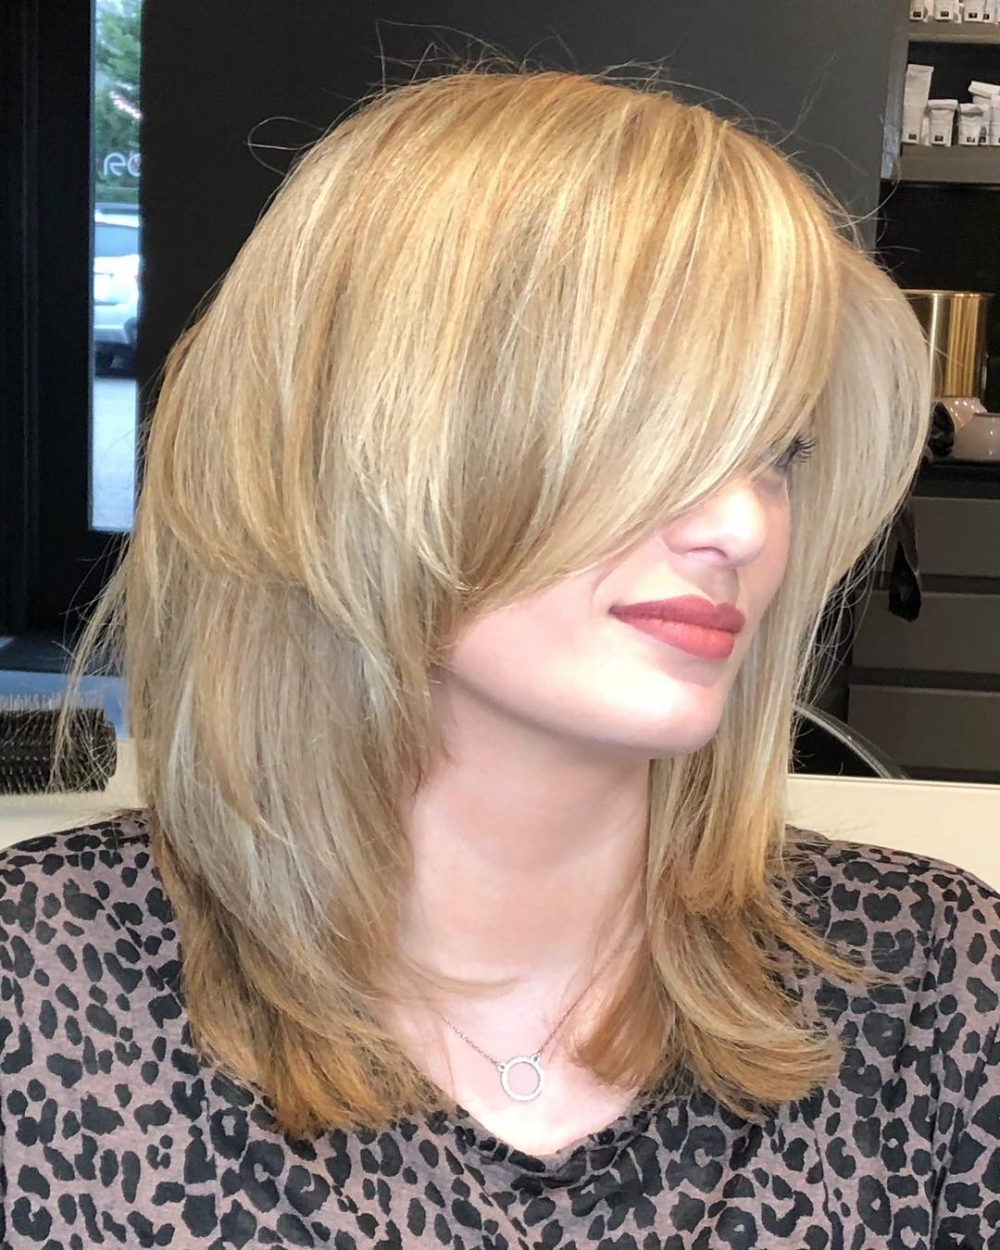 Well Liked Medium Hairstyles For Square Faces With Bangs Throughout 23 Perfect Medium Hairstyles For Square Faces (popular For 2019) (View 2 of 20)